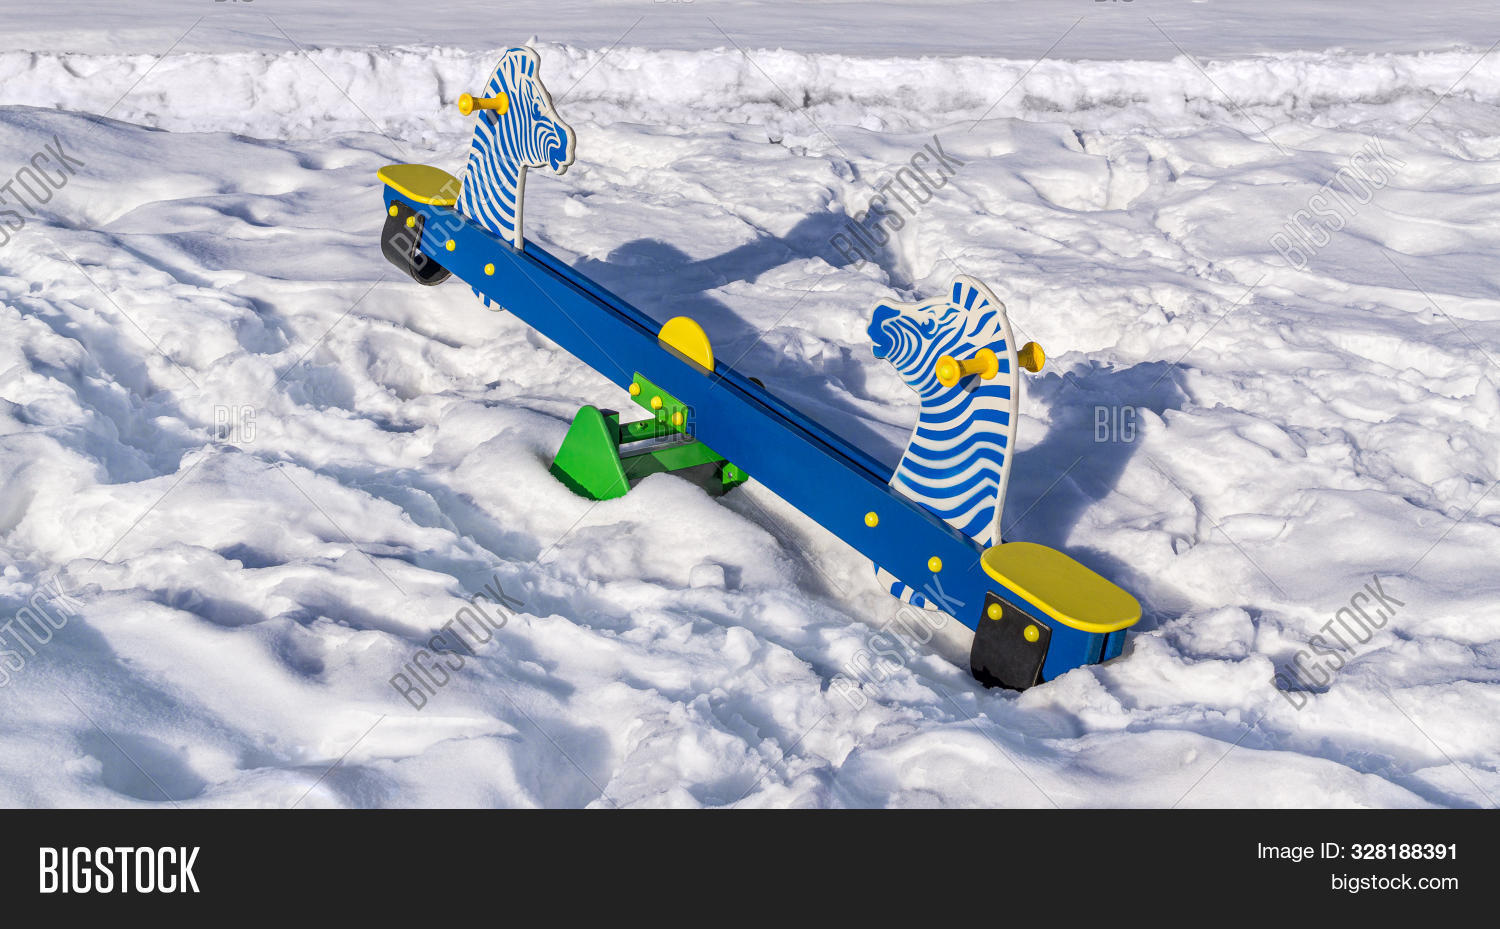 Seesaw In Shape Of Zebras Is On Snowy Playground. Winter Sunny Day. Copy Space